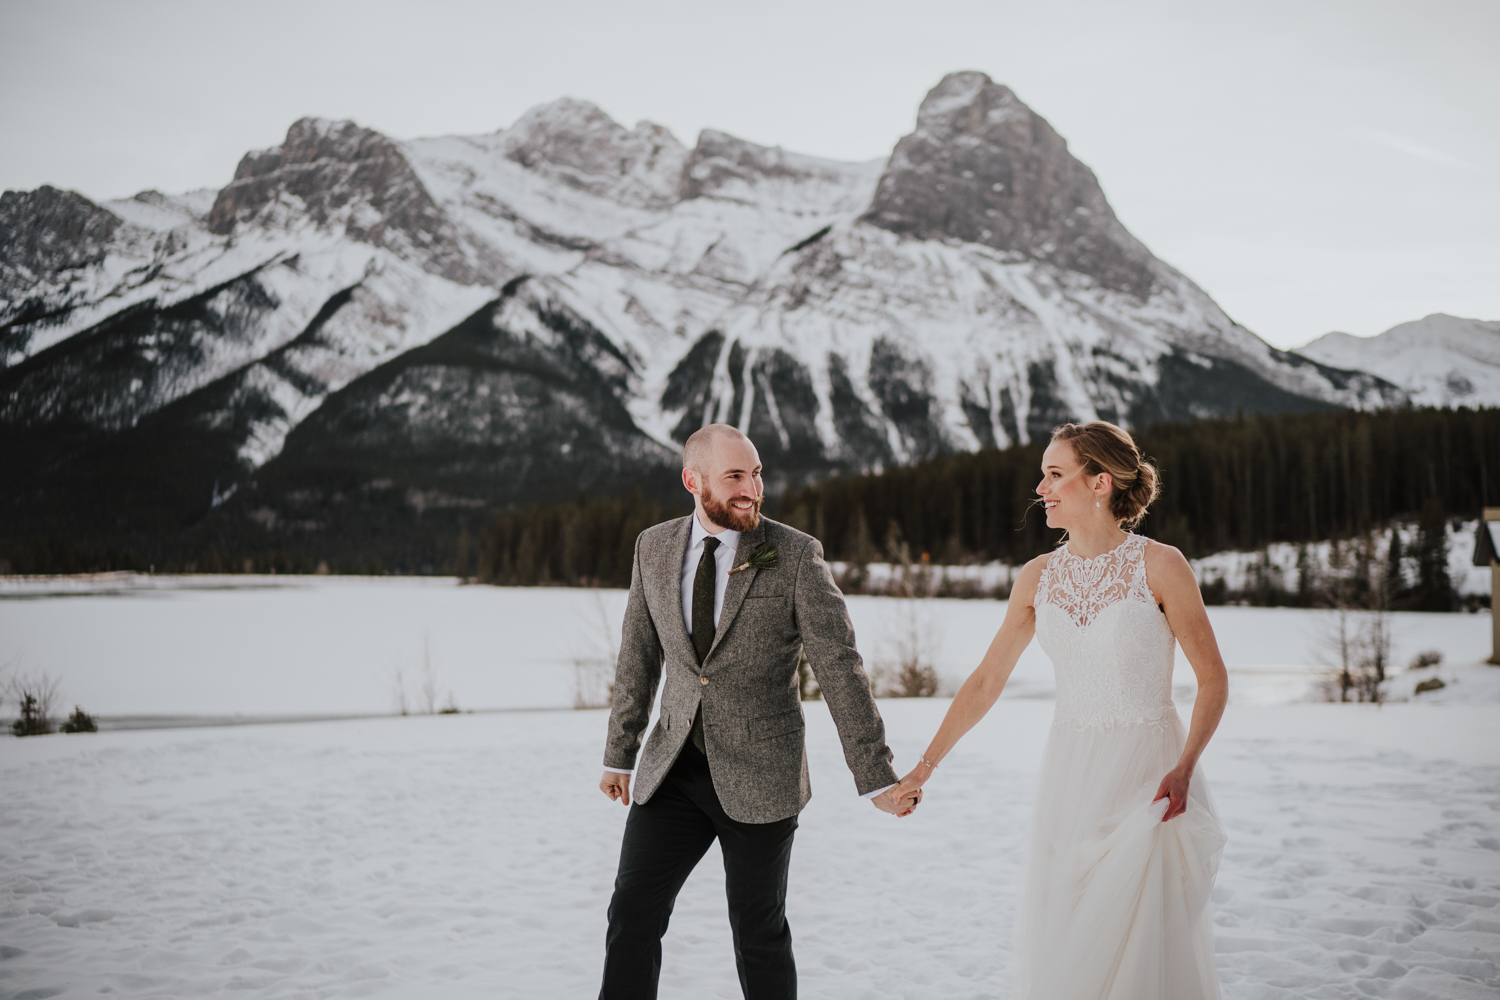 Canmore-Wedding-Photographer-66.jpg